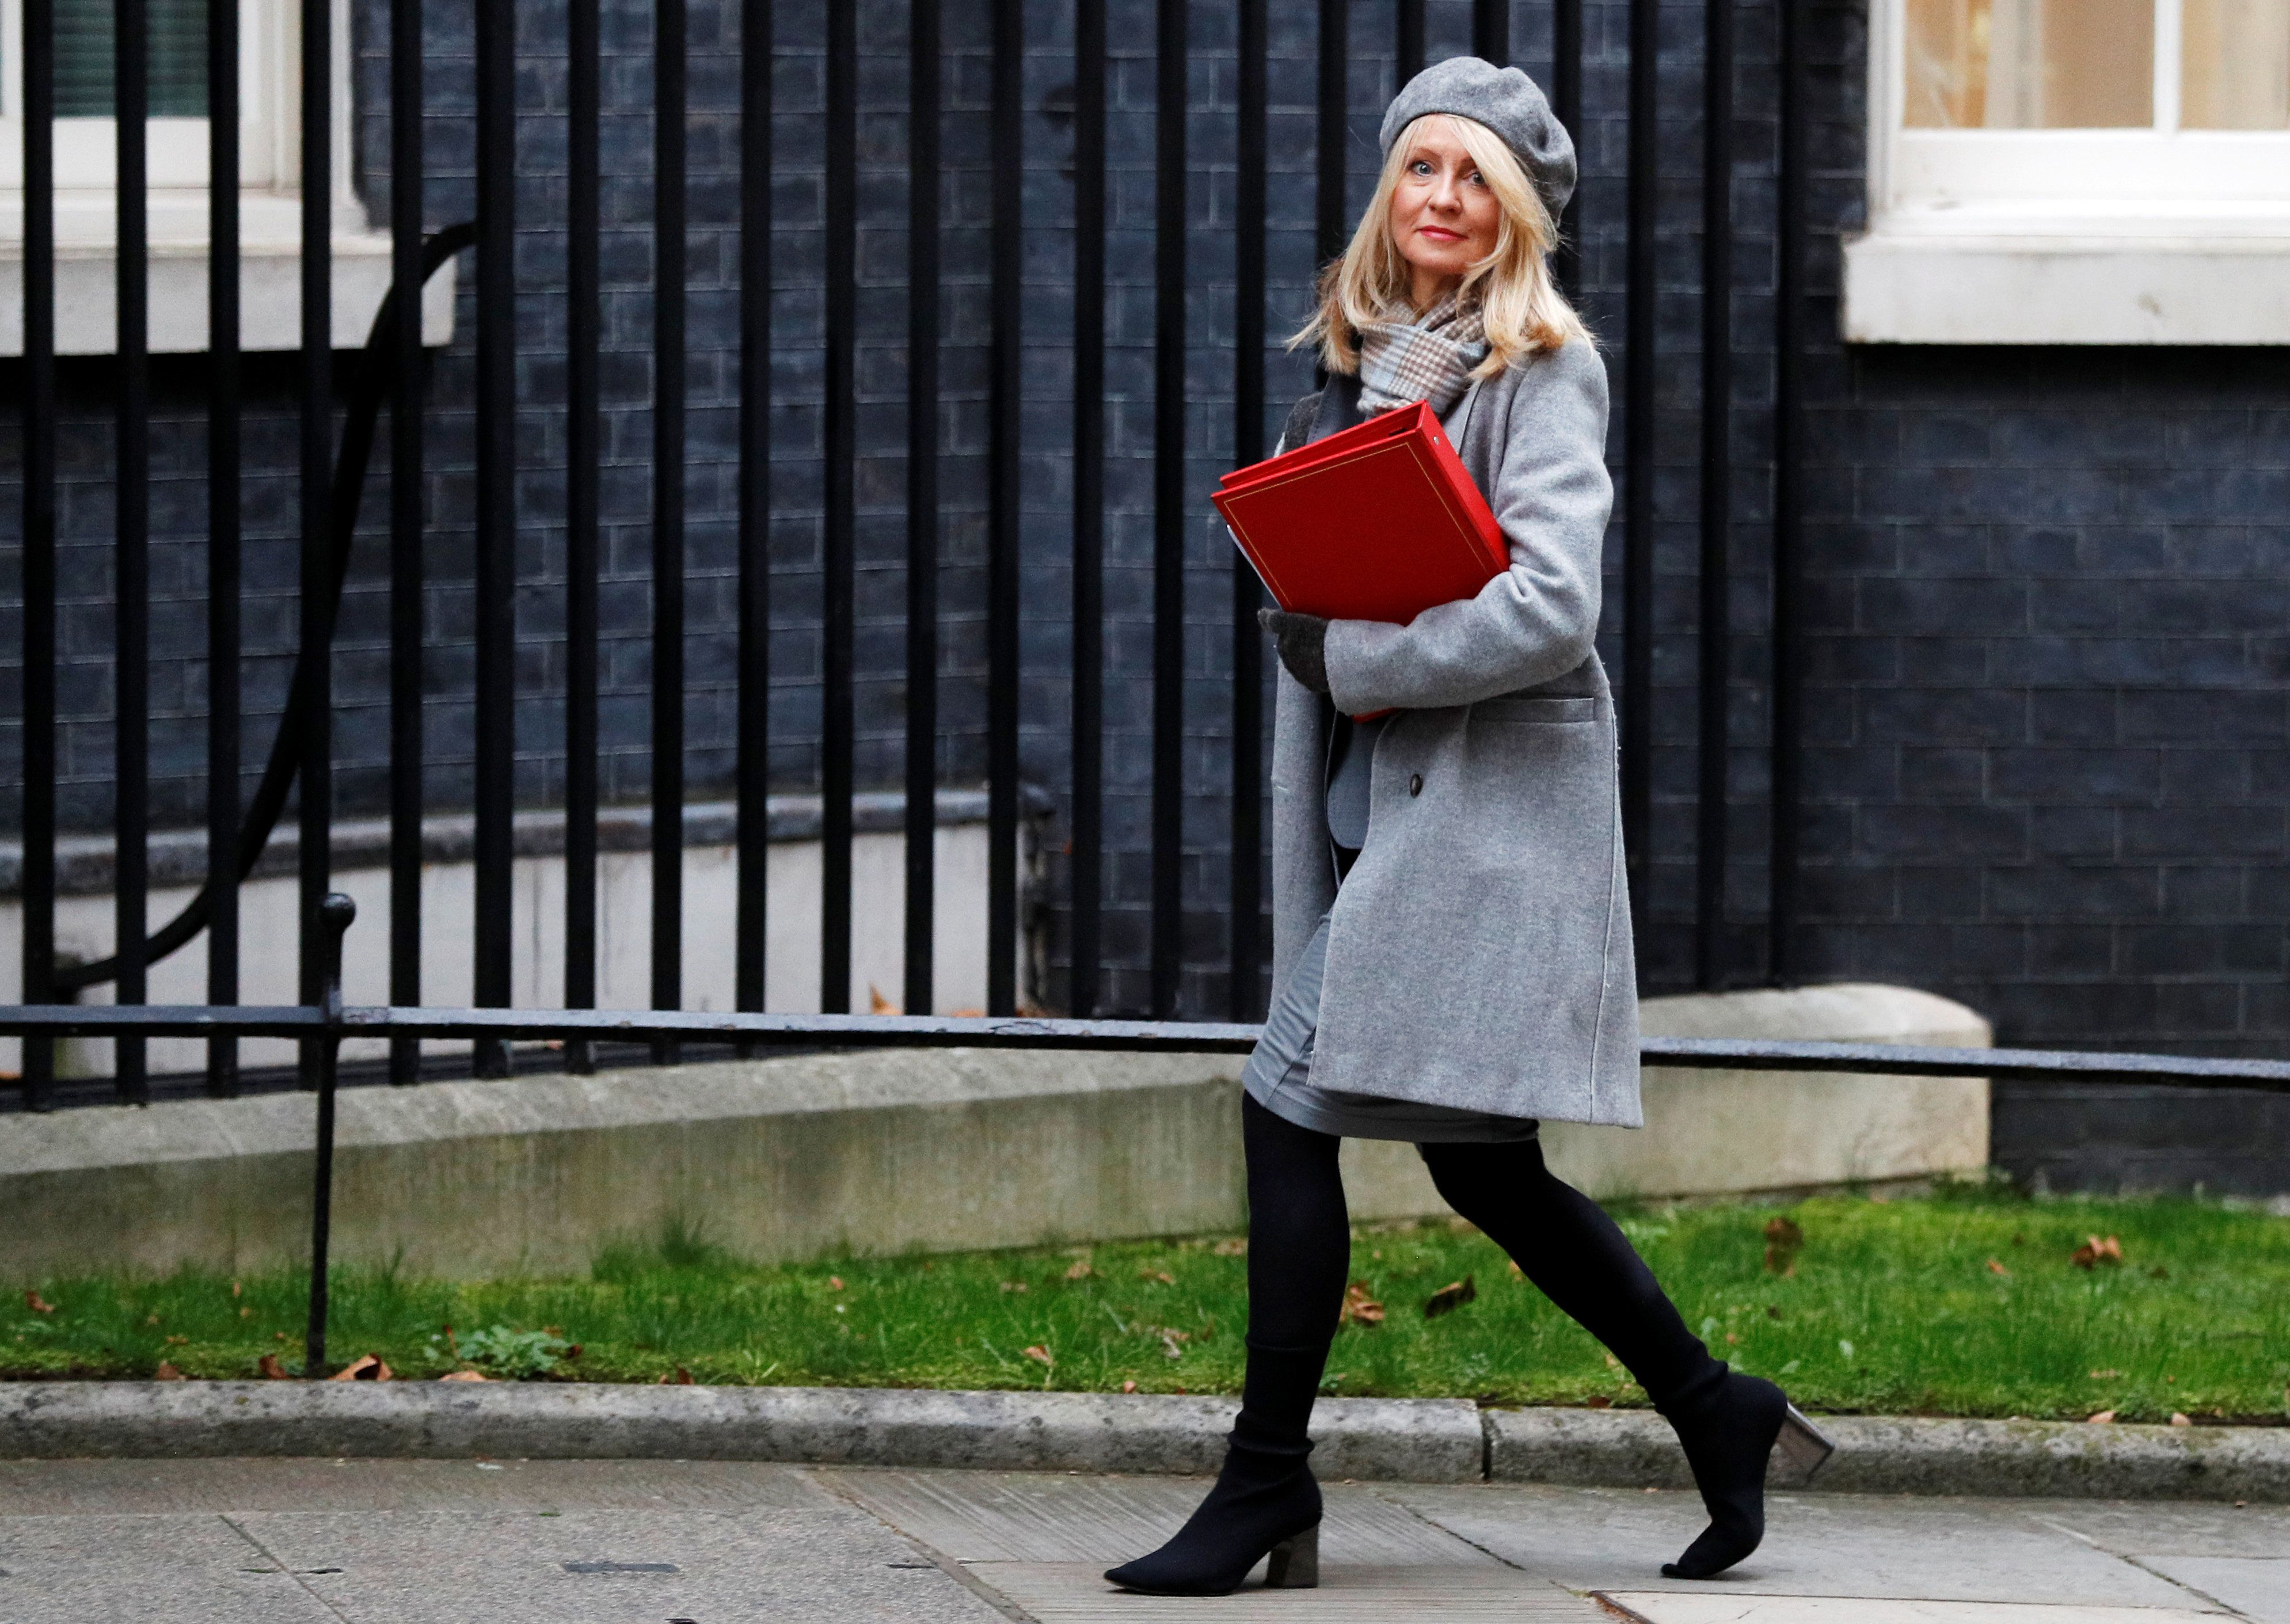 Esther McVey's First Priority Must Be Fixing Employment And Support